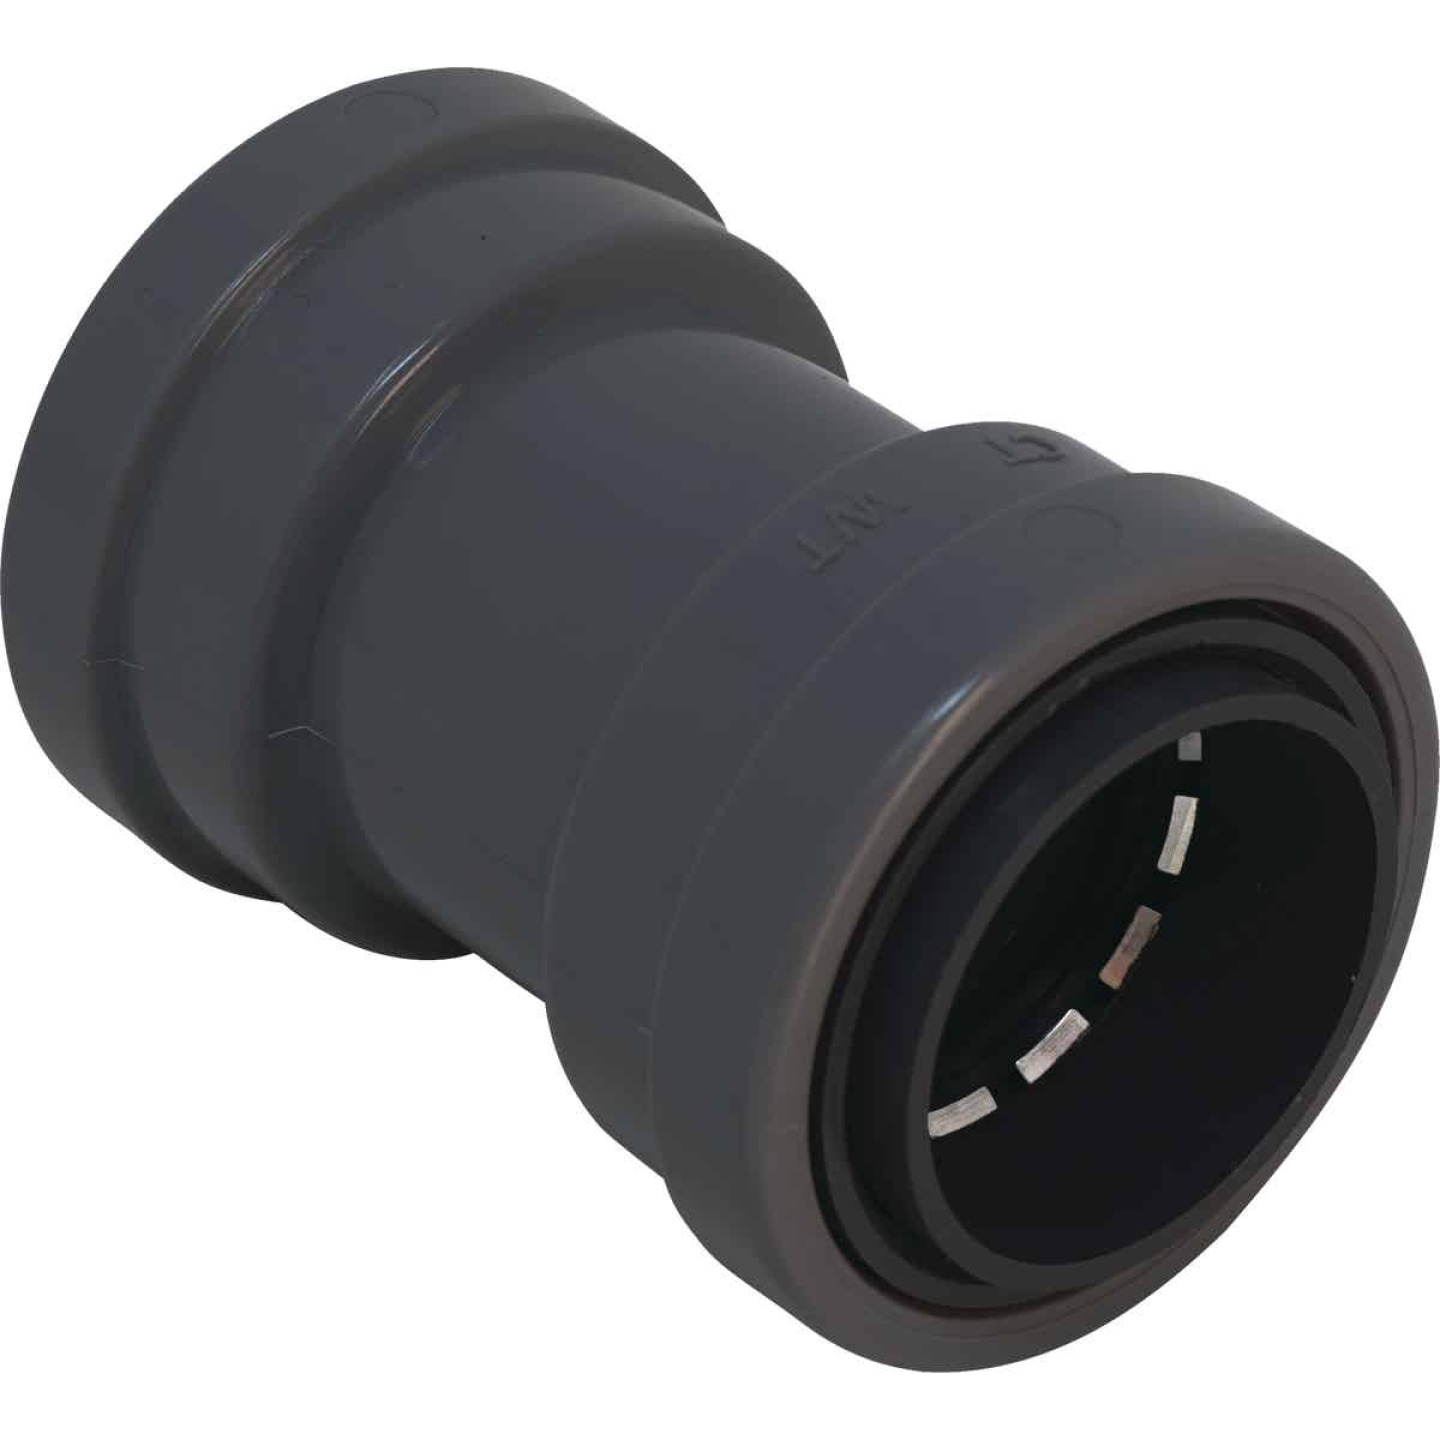 Southwire SimPush 3/4 In. Liquid Tight Push-To-Install Type B Conduit Coupling Image 1